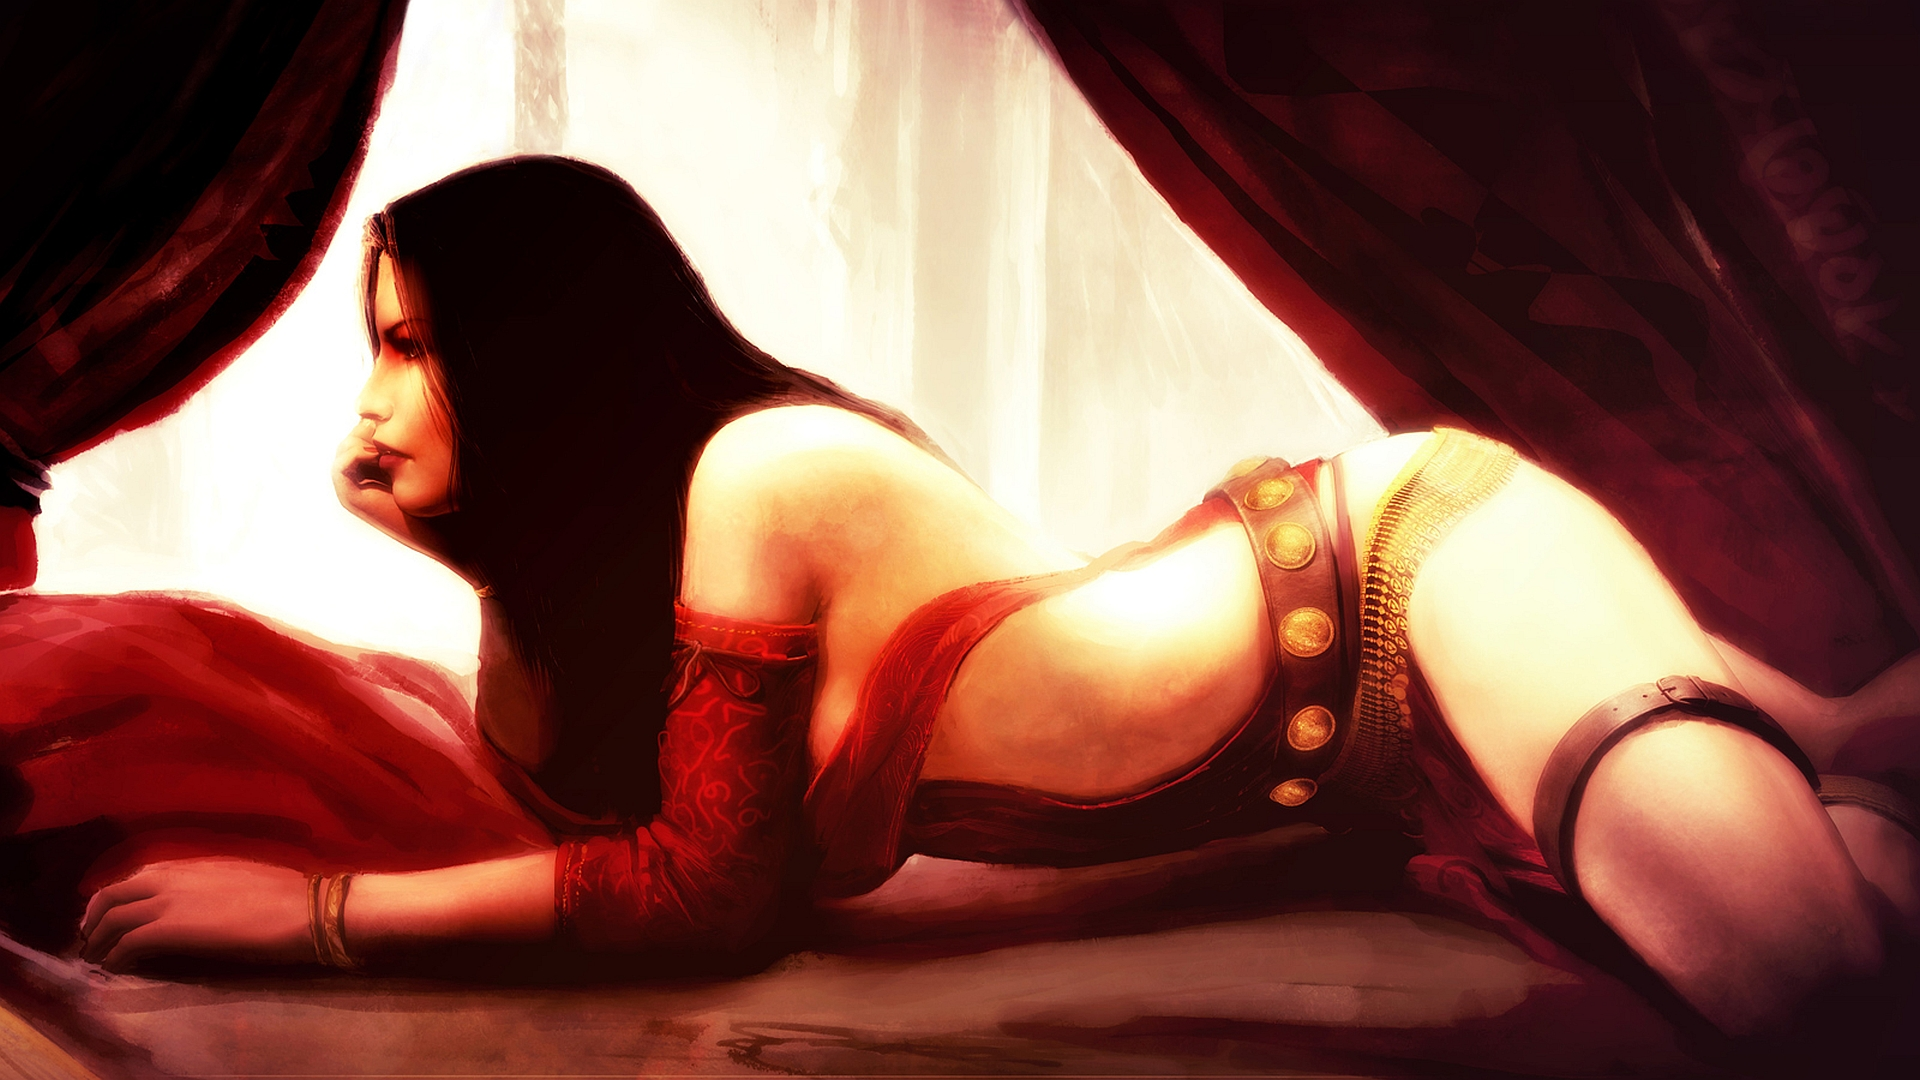 Wallpaper prince of persia hentai sex hentay vids